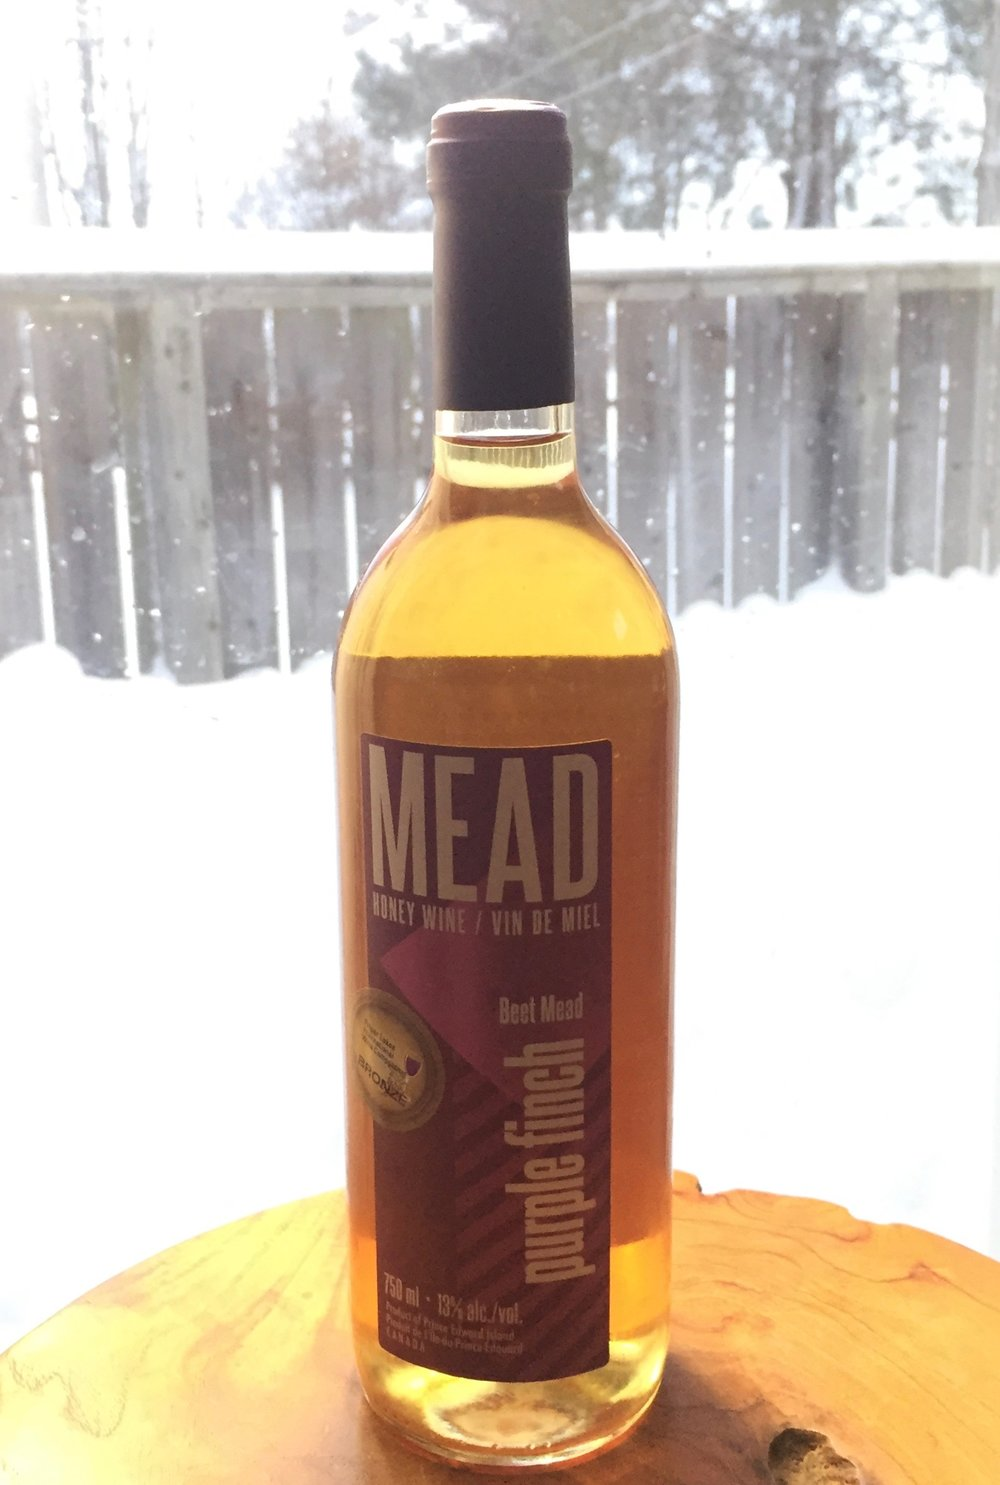 Delicious Award Winning Mead by the gifted Daniel and Beatrice of Canoe Cove Meadery!